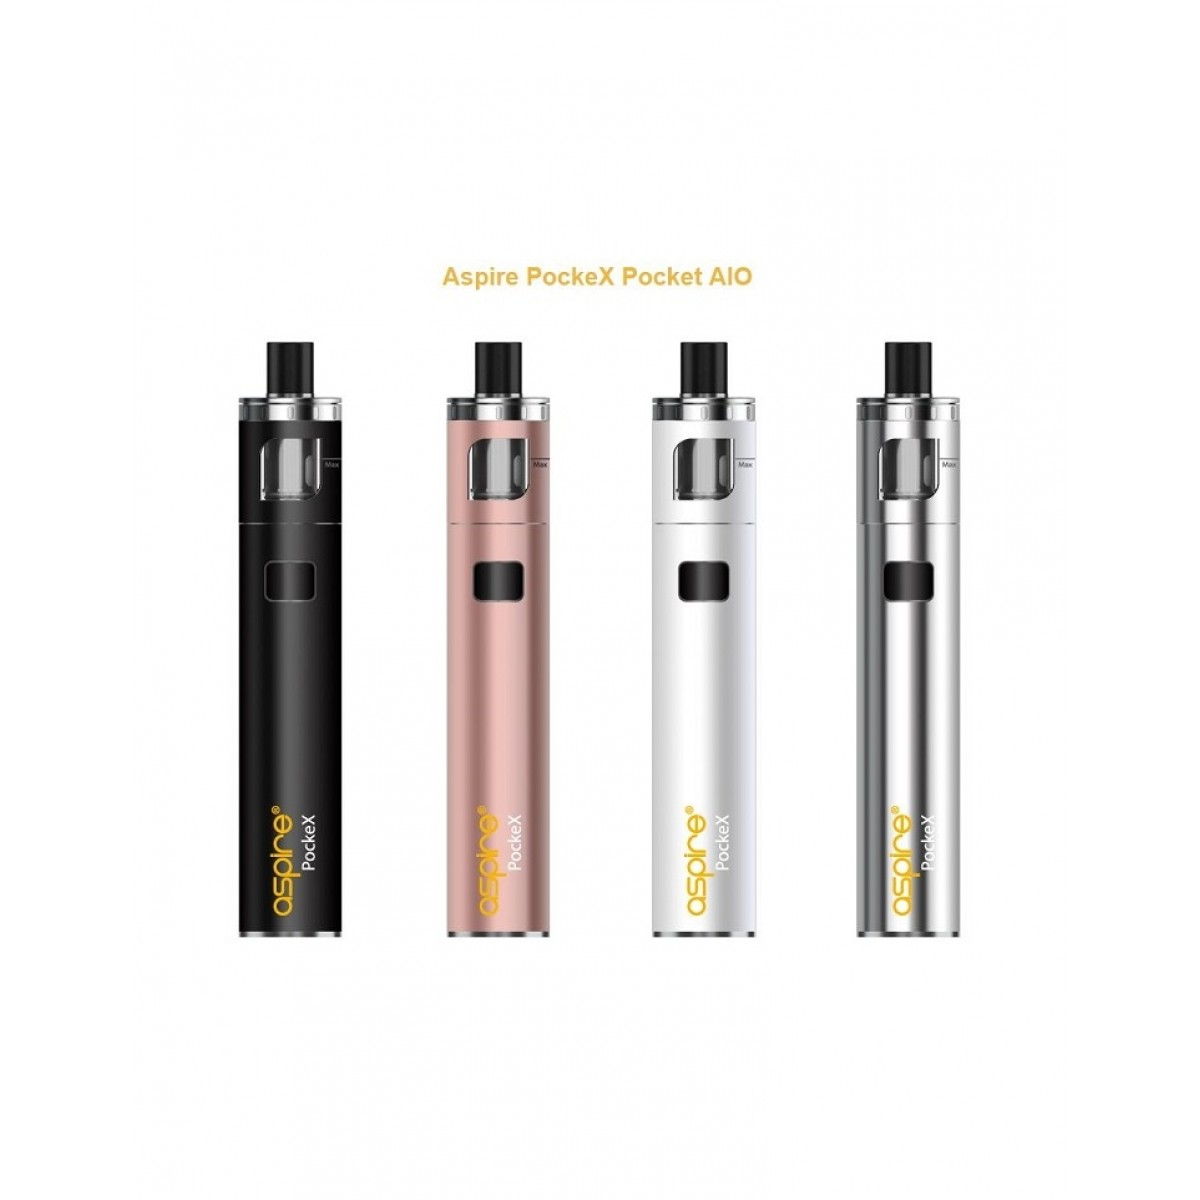 Aspire PockeX AIO